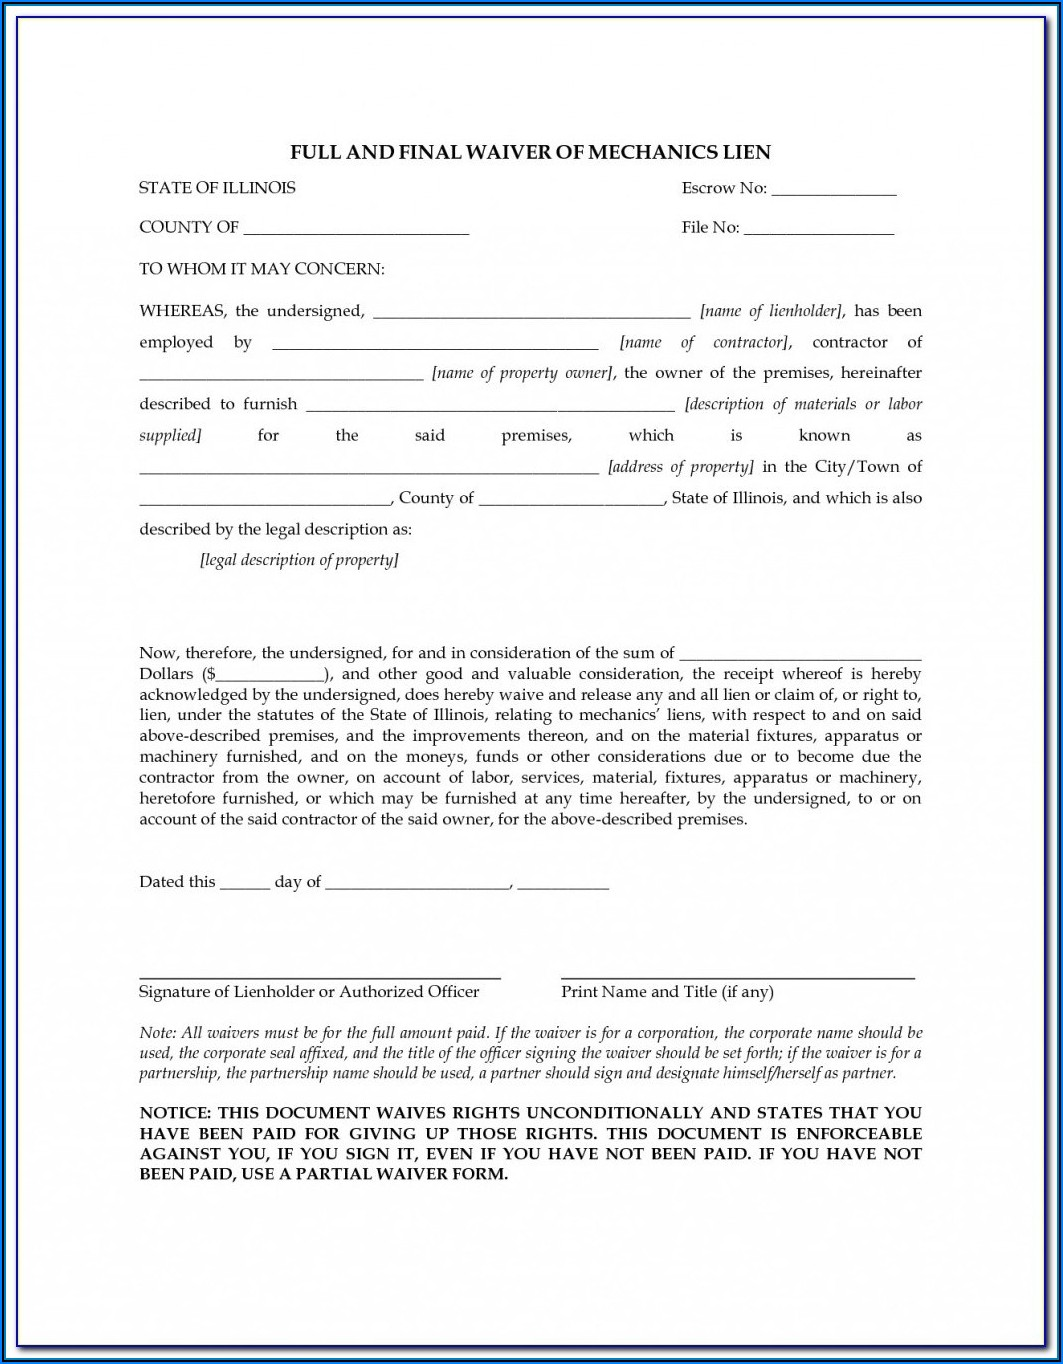 Va Dmv Mechanics Lien Form